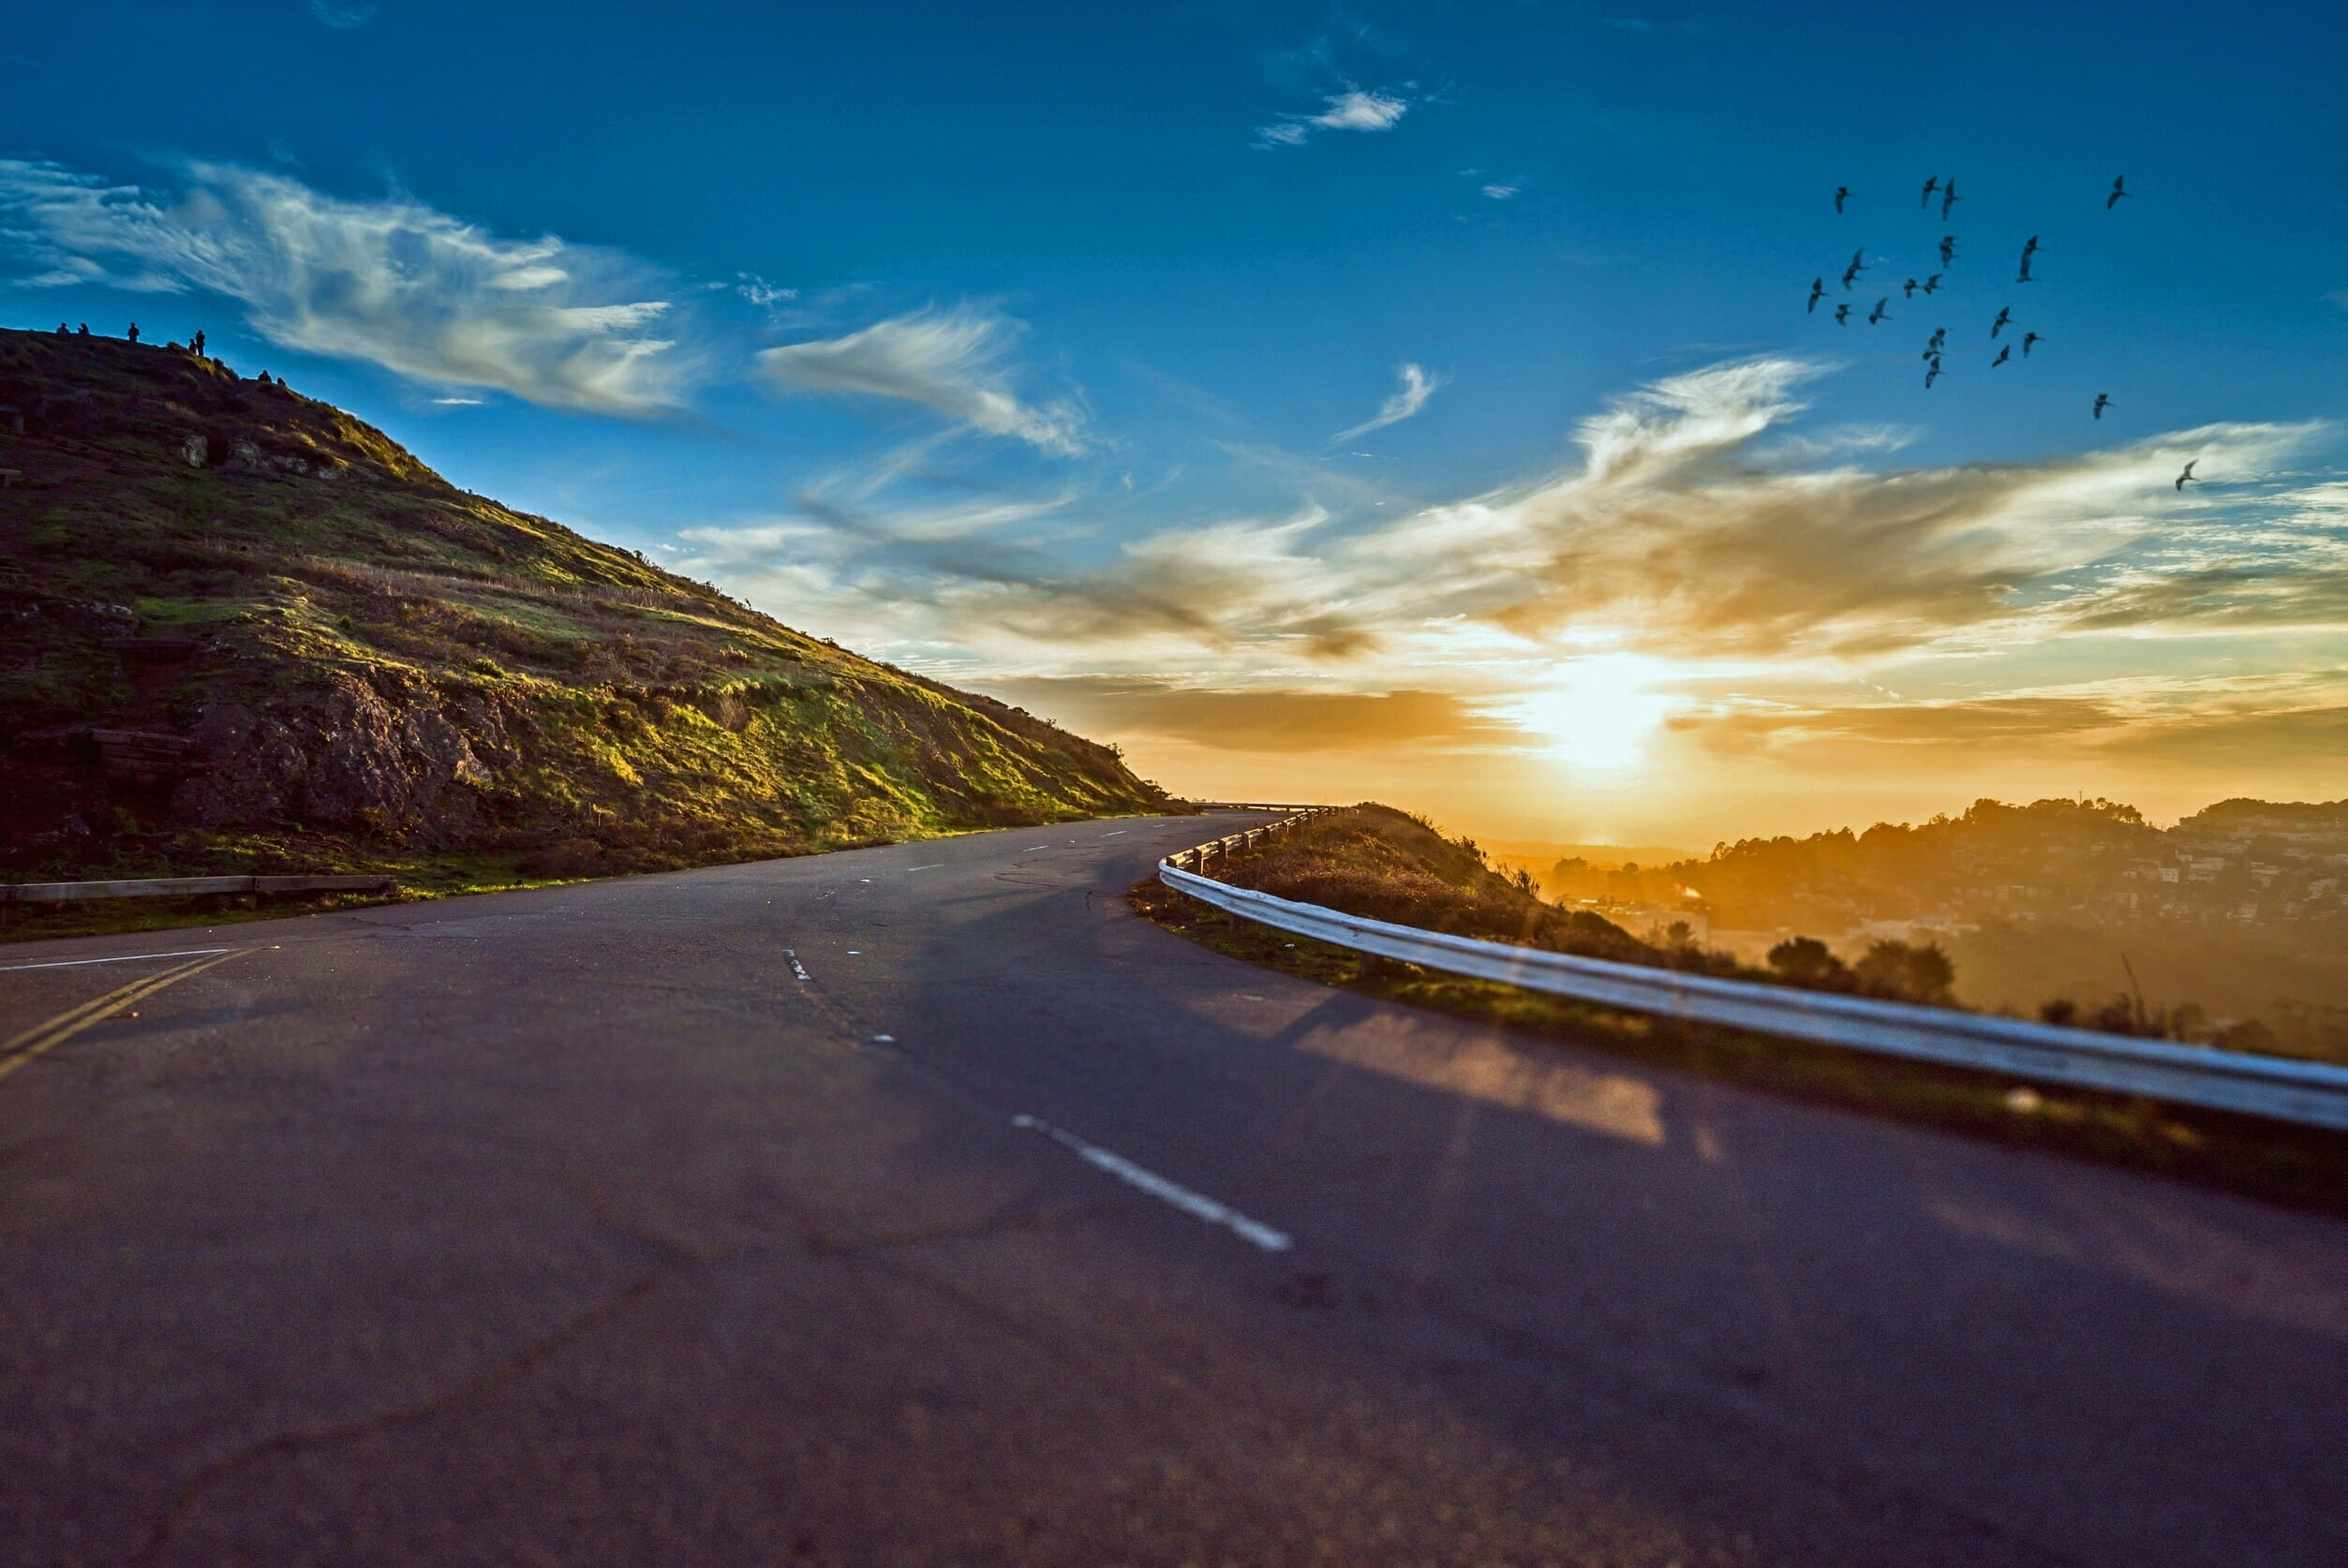 Top 3 Ways To Buy A Used Travel